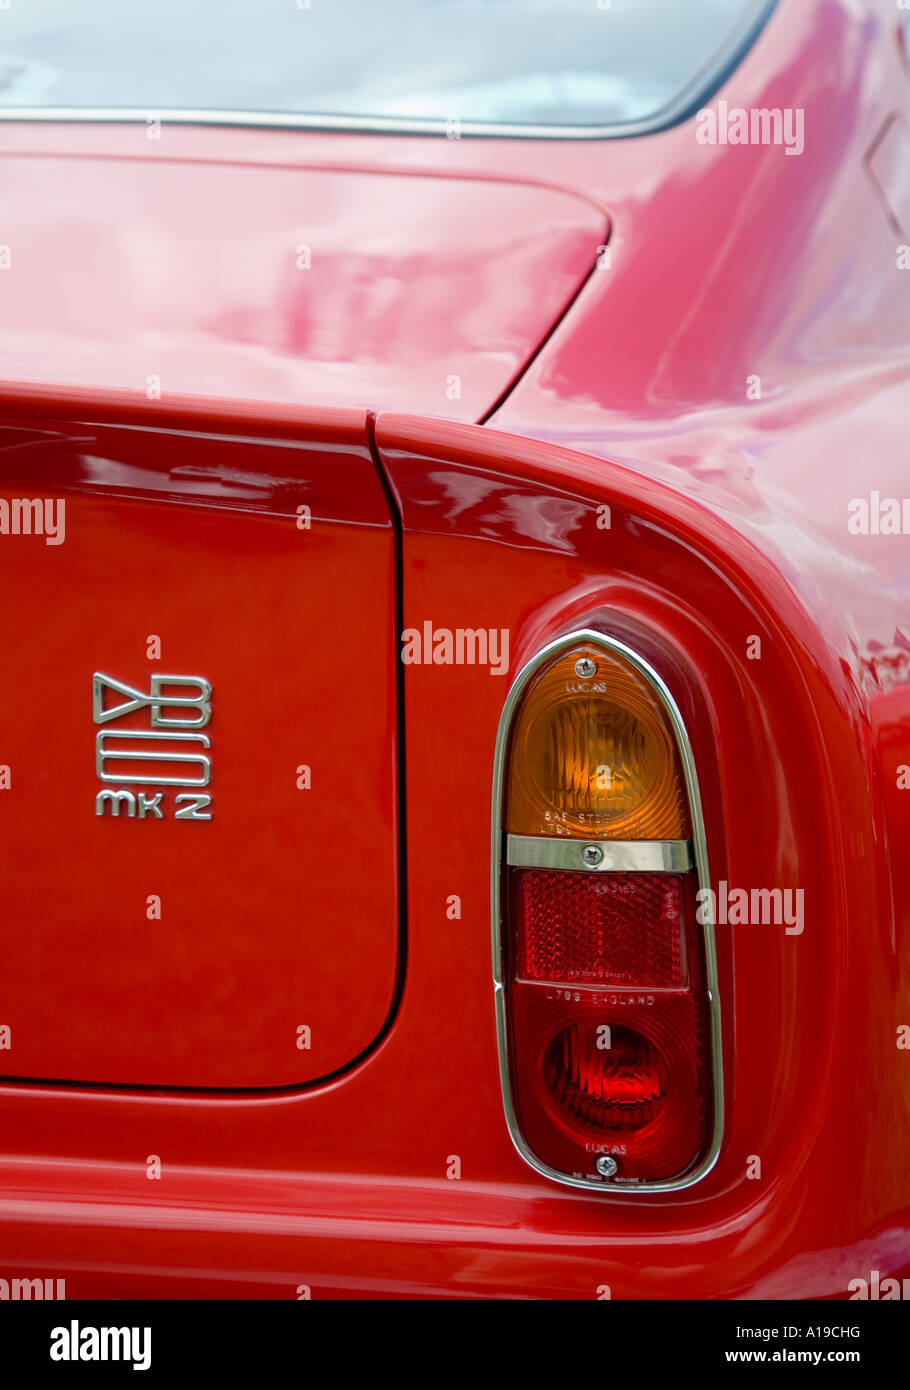 Red Aston Martin Db6 Mk2 Rear Wing And Lights Stock Photo Alamy